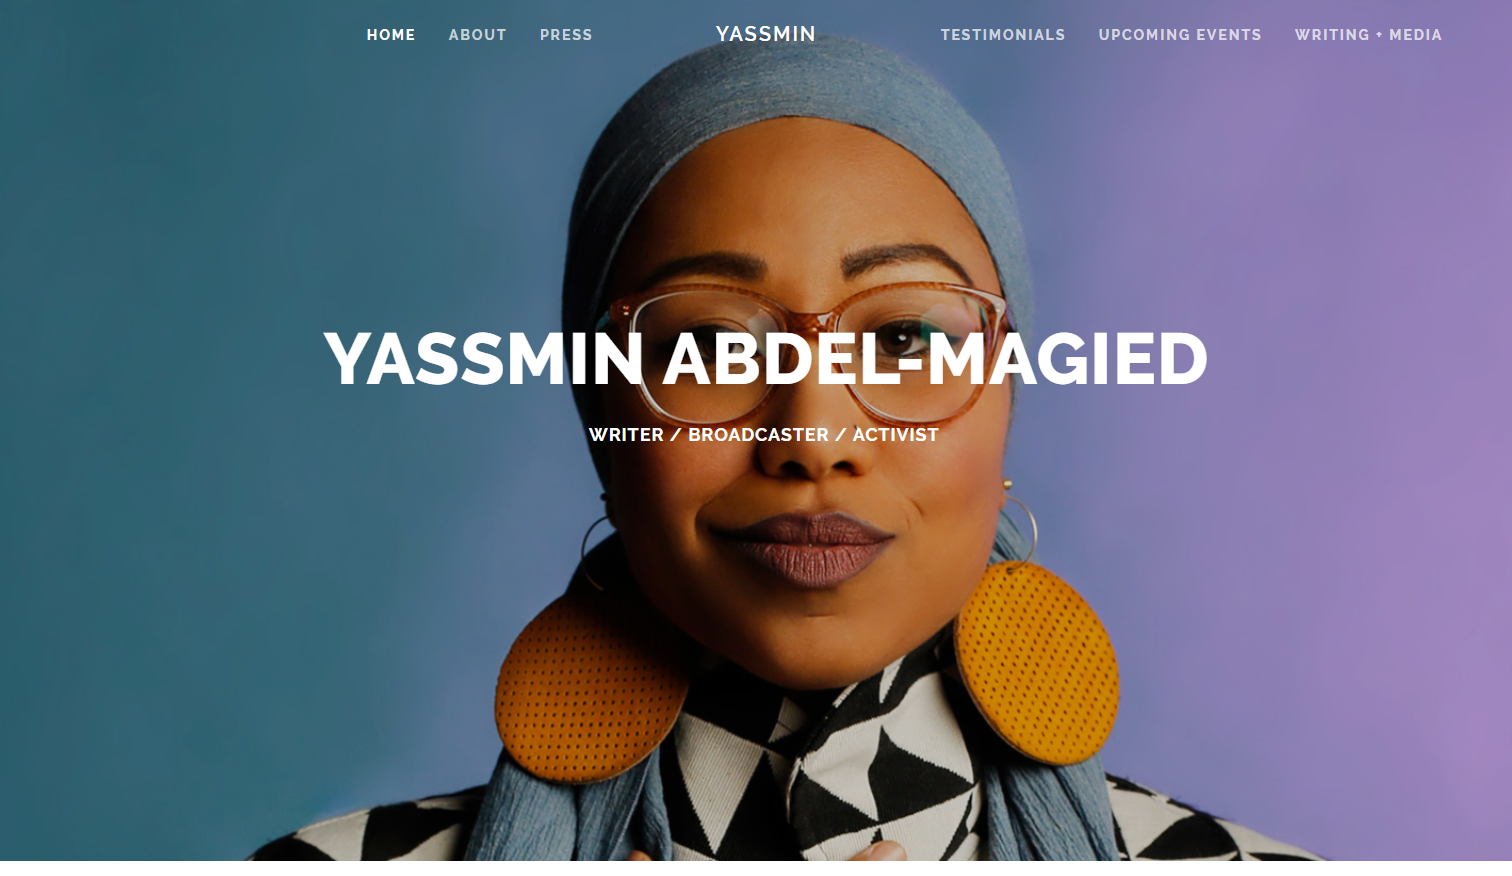 Image of Yassmin Abdel-Magied's website that was created using Squarespace.